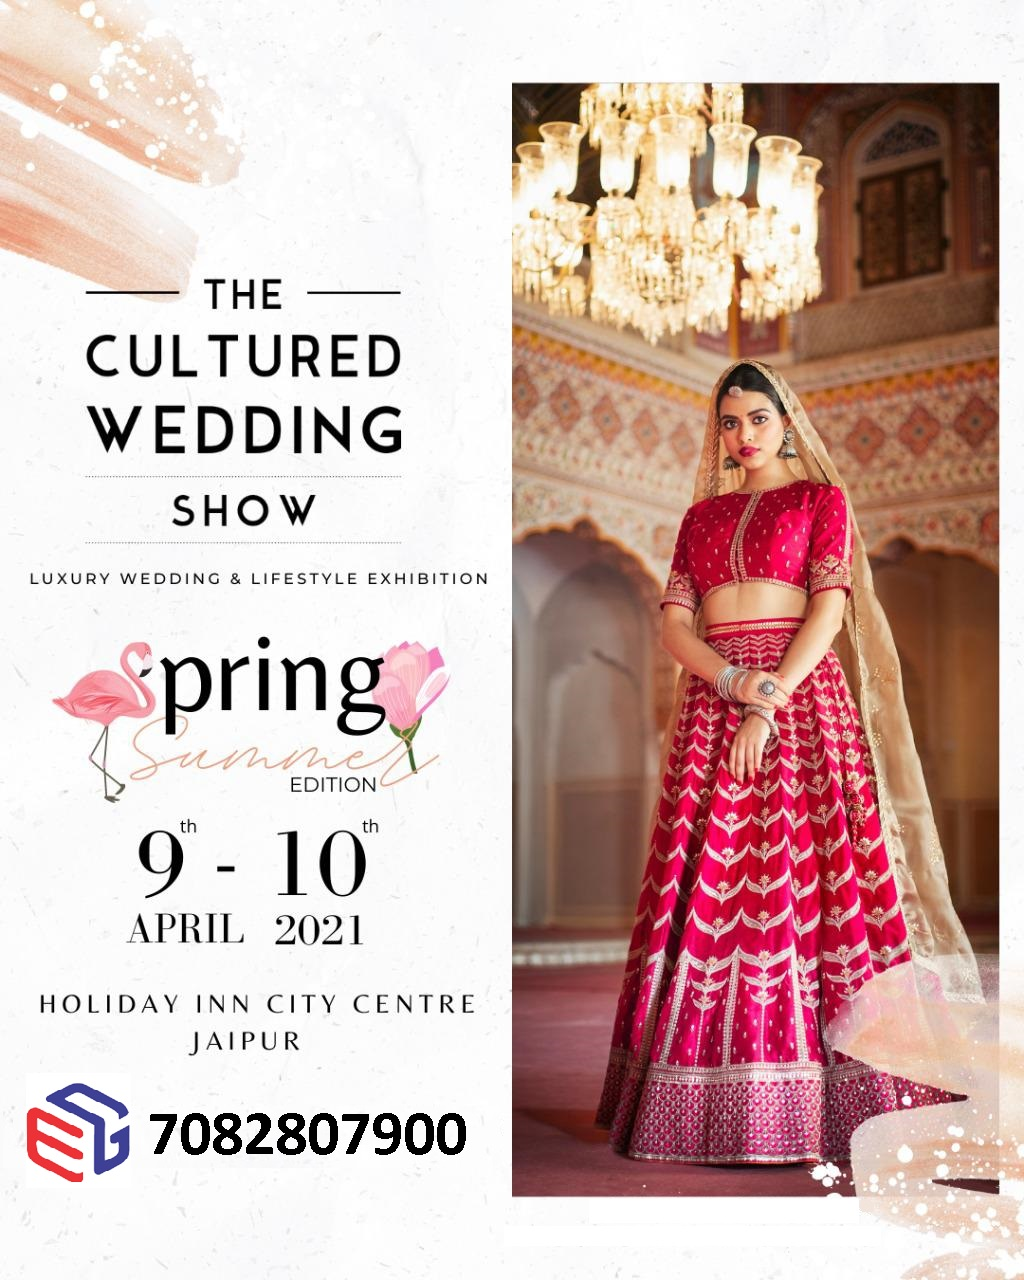 The Culture Wedding Show